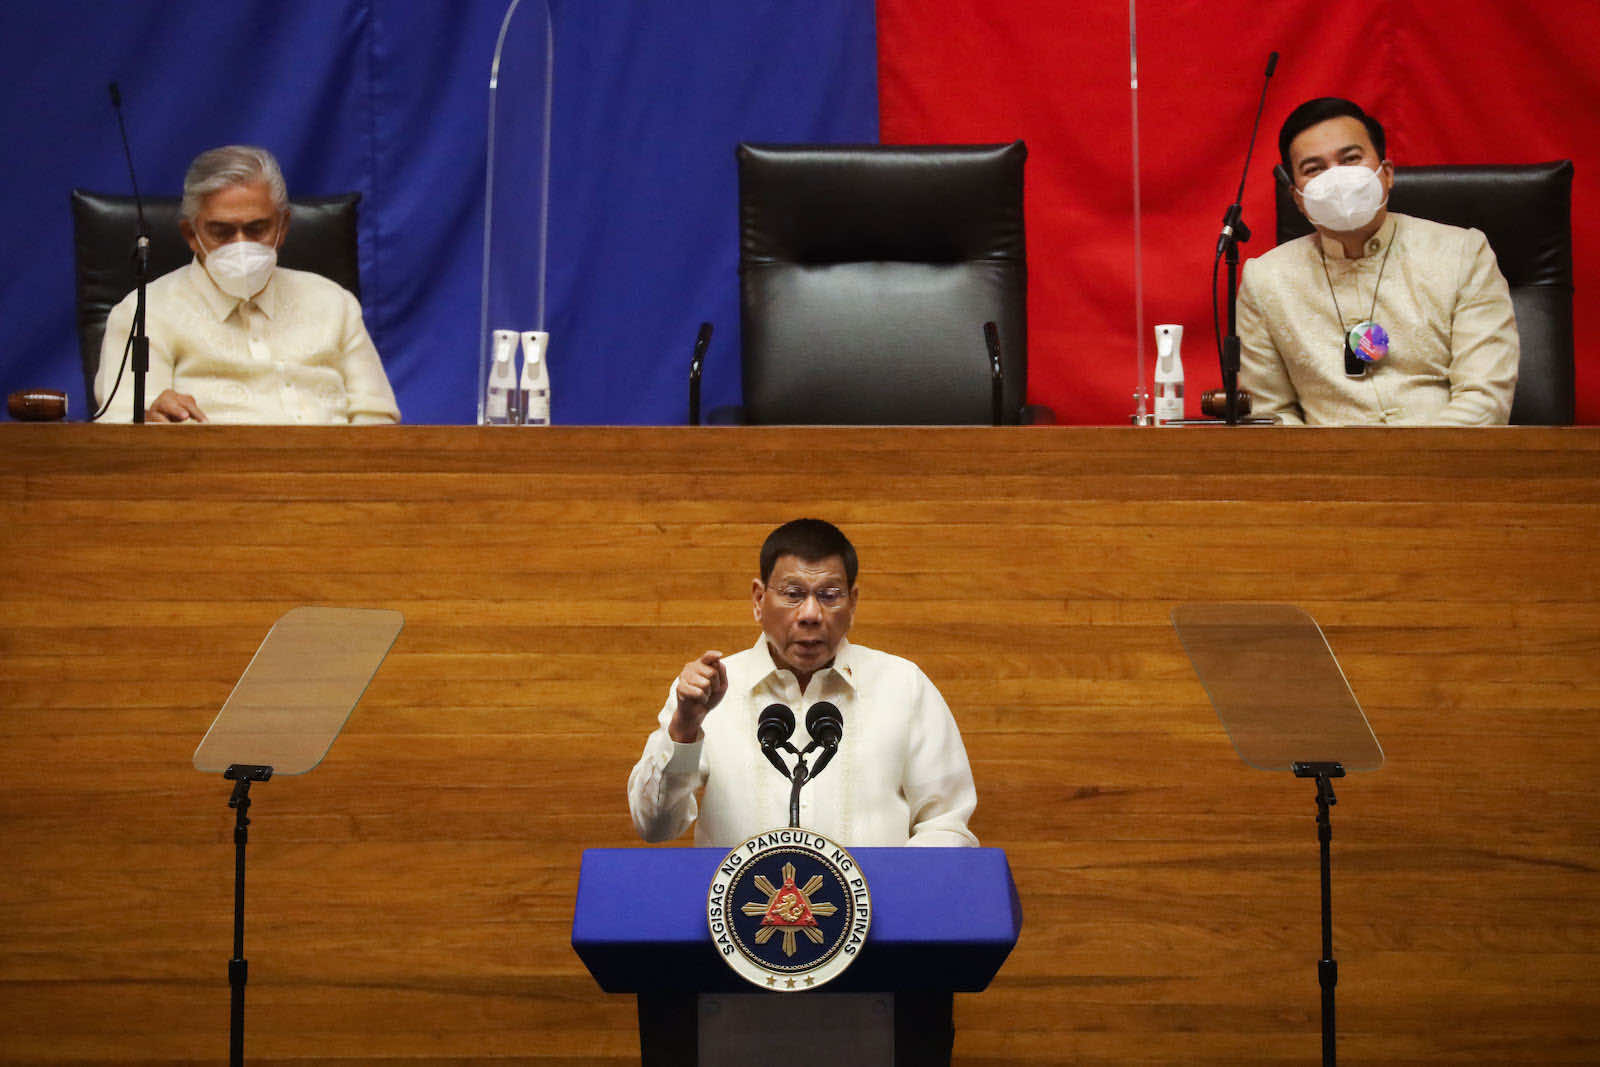 Philippine President Rodrigo Duterte speaks during the annual state of the nation address at the House of Representatives in Manila on 26 July (Lisa Marie David/AFP via Getty Images)